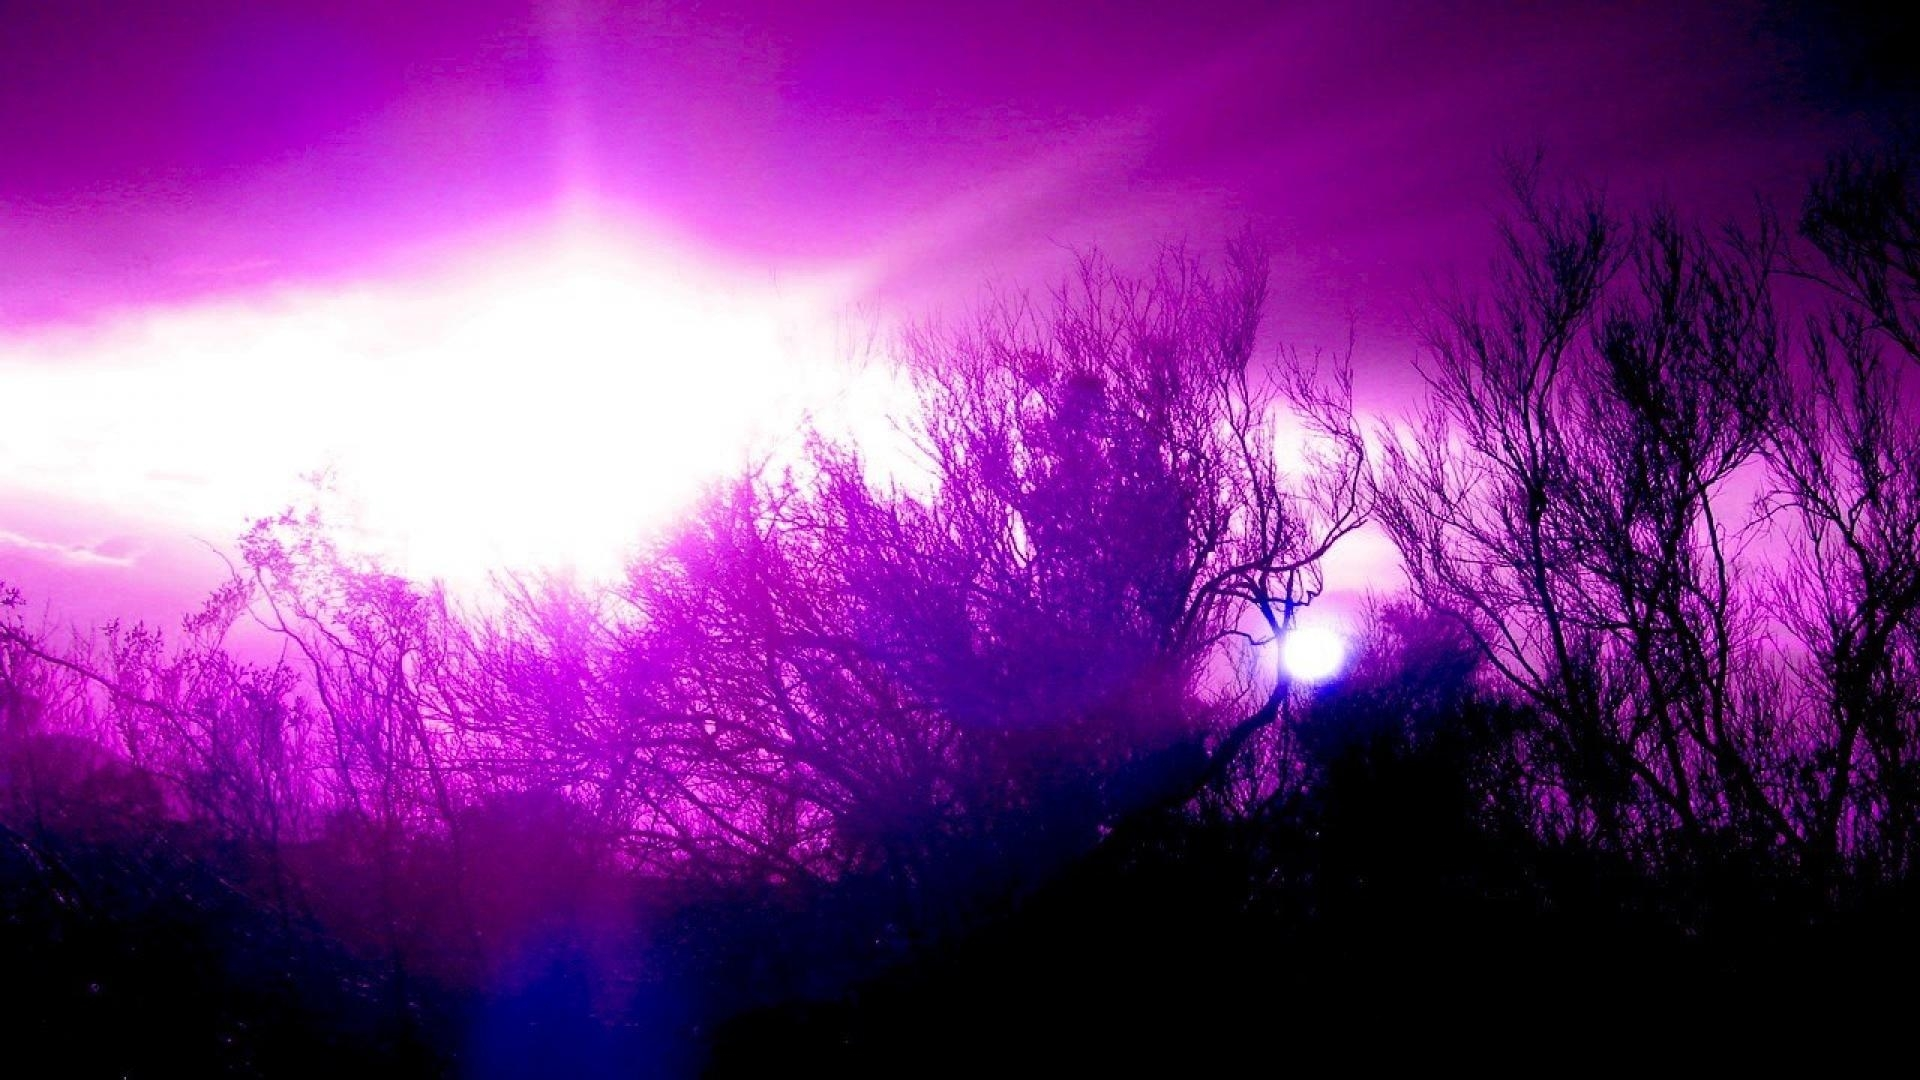 purple abstract photo